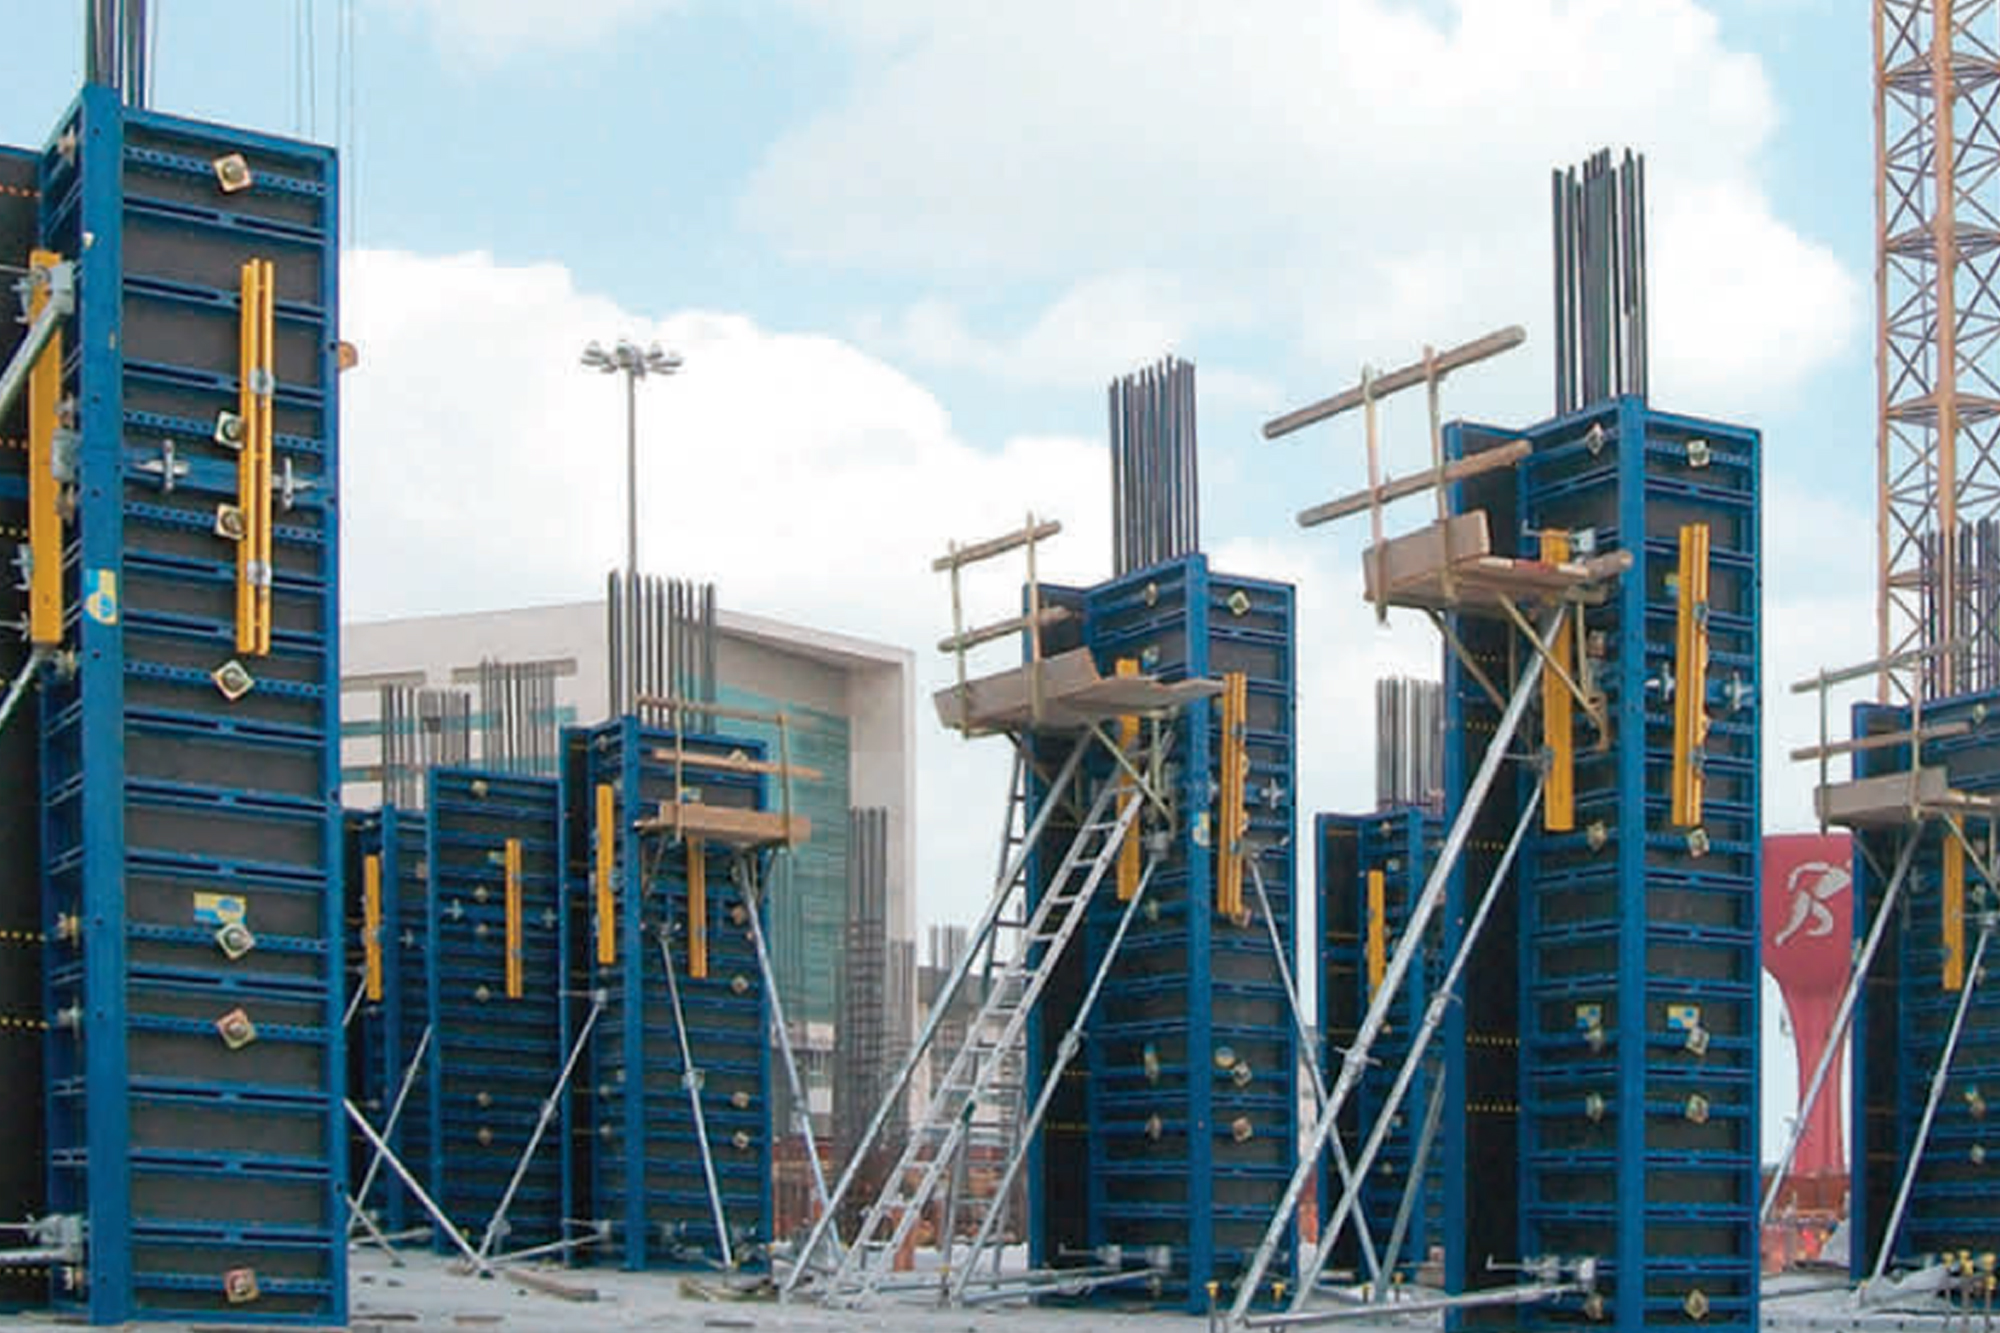 Catering to future demand for system formwork